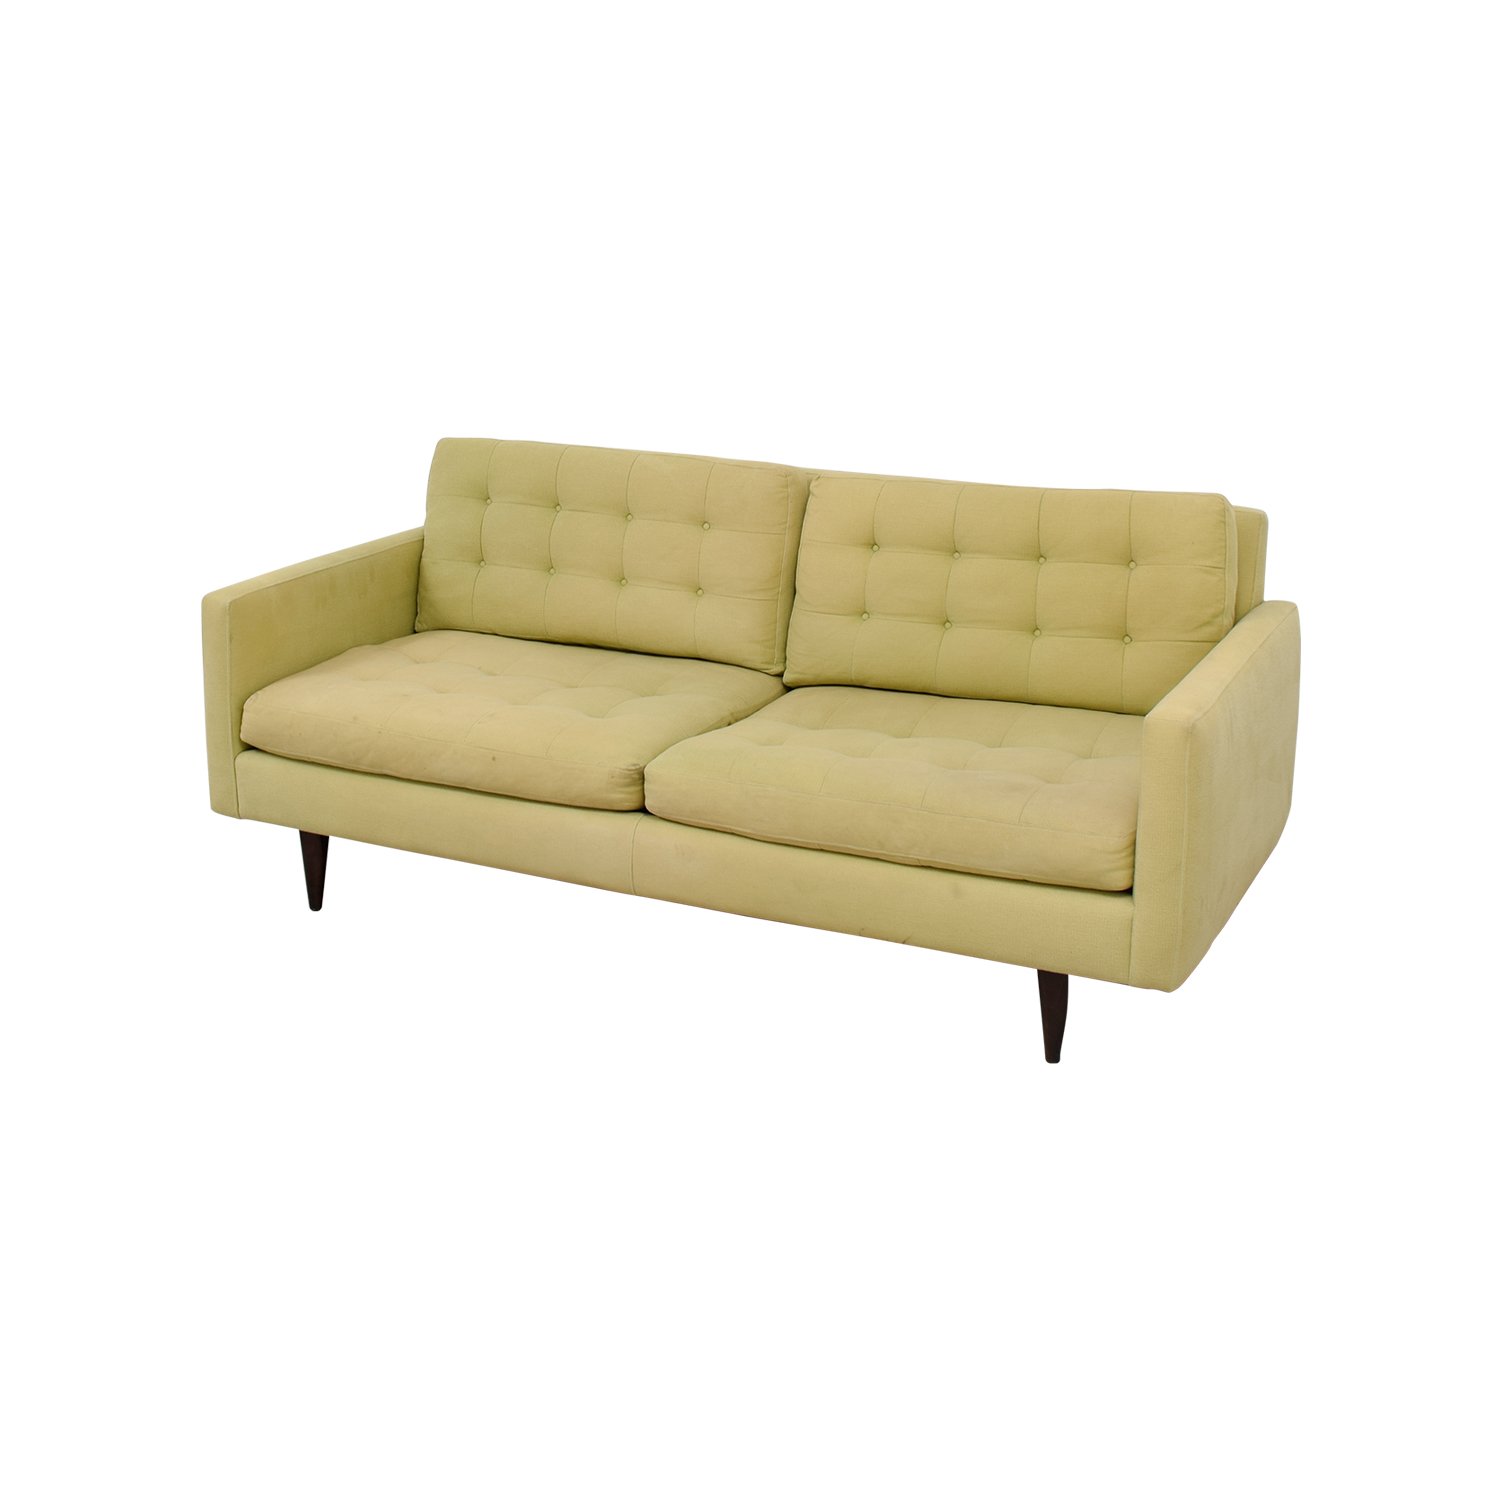 77 off crate barrel crate barrel petrie pale green for Small tufted sofa